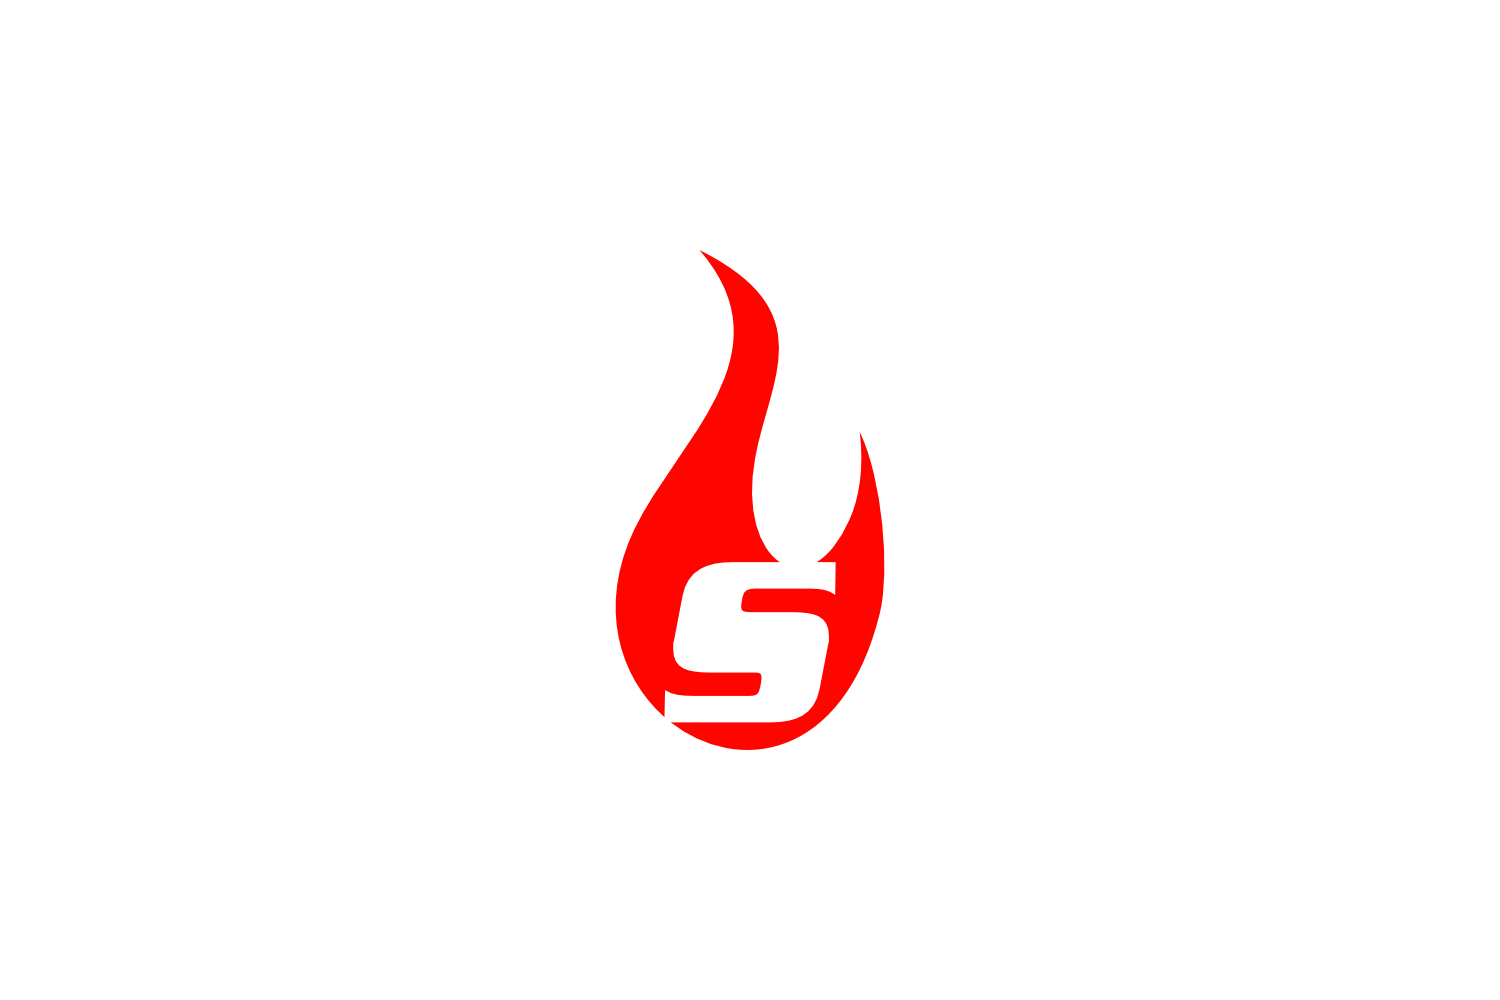 s letter flame logo example image 1